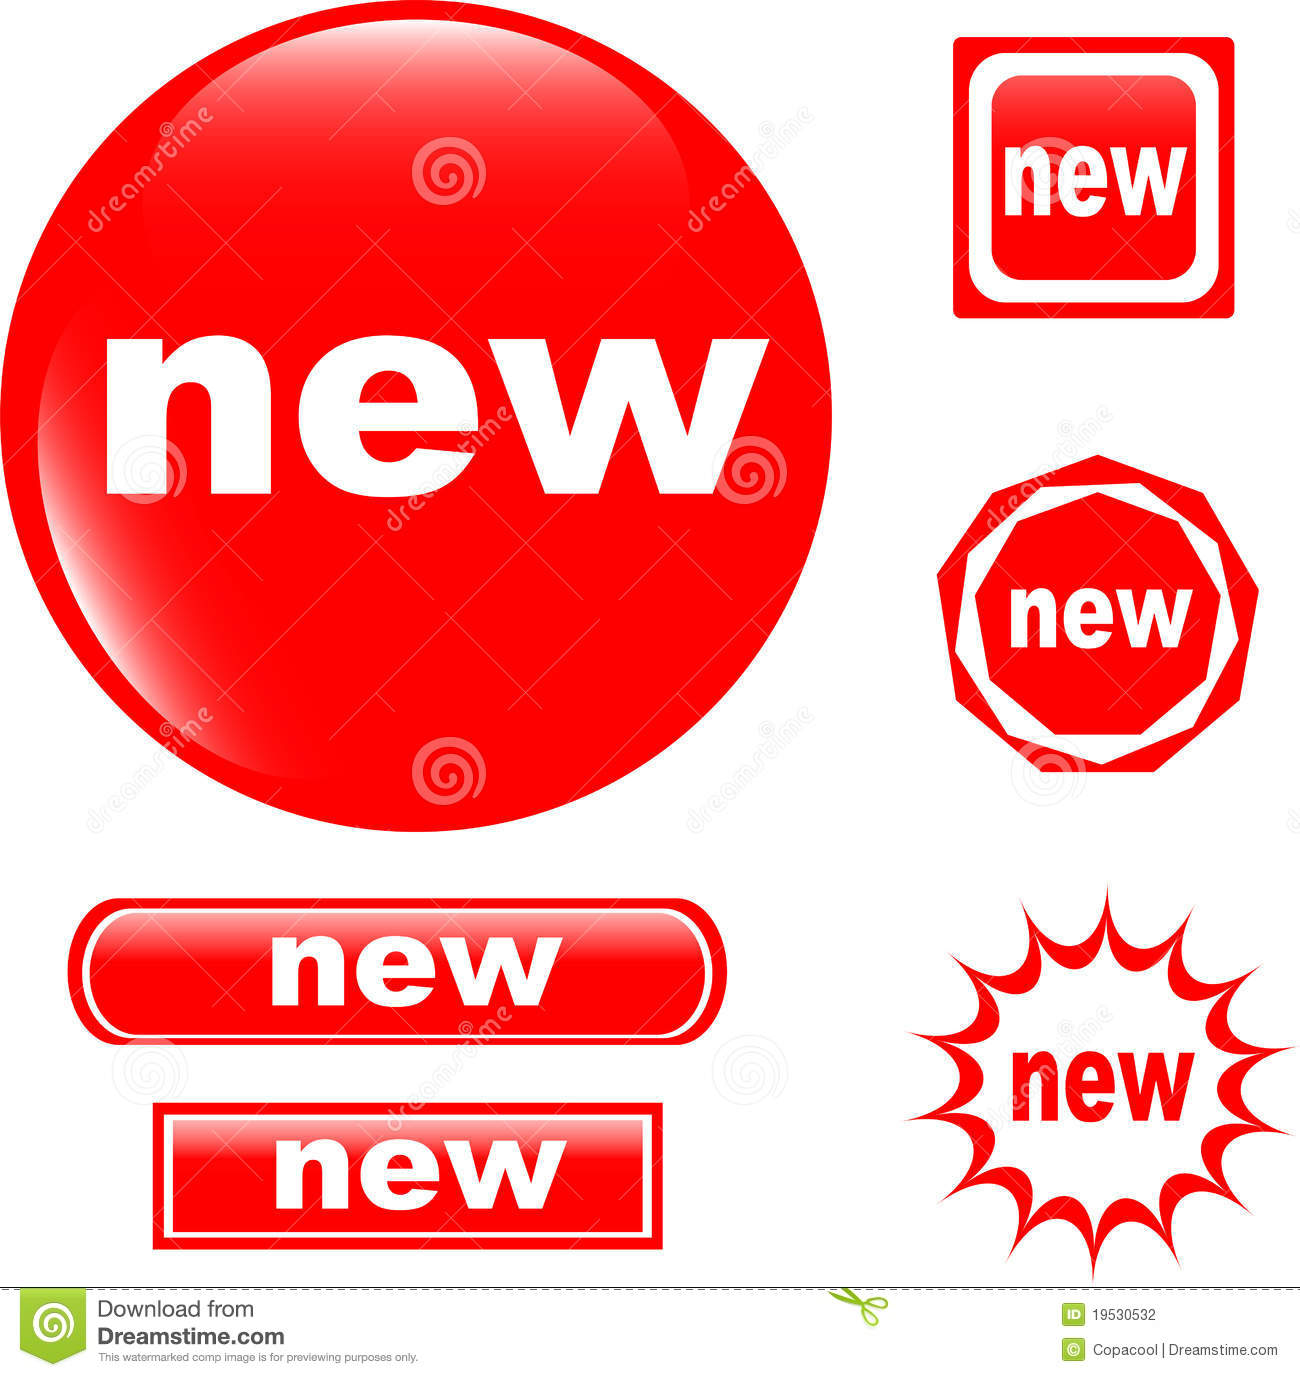 NEW Button Web Glossy Icon Stock Photography - Image: 19530532